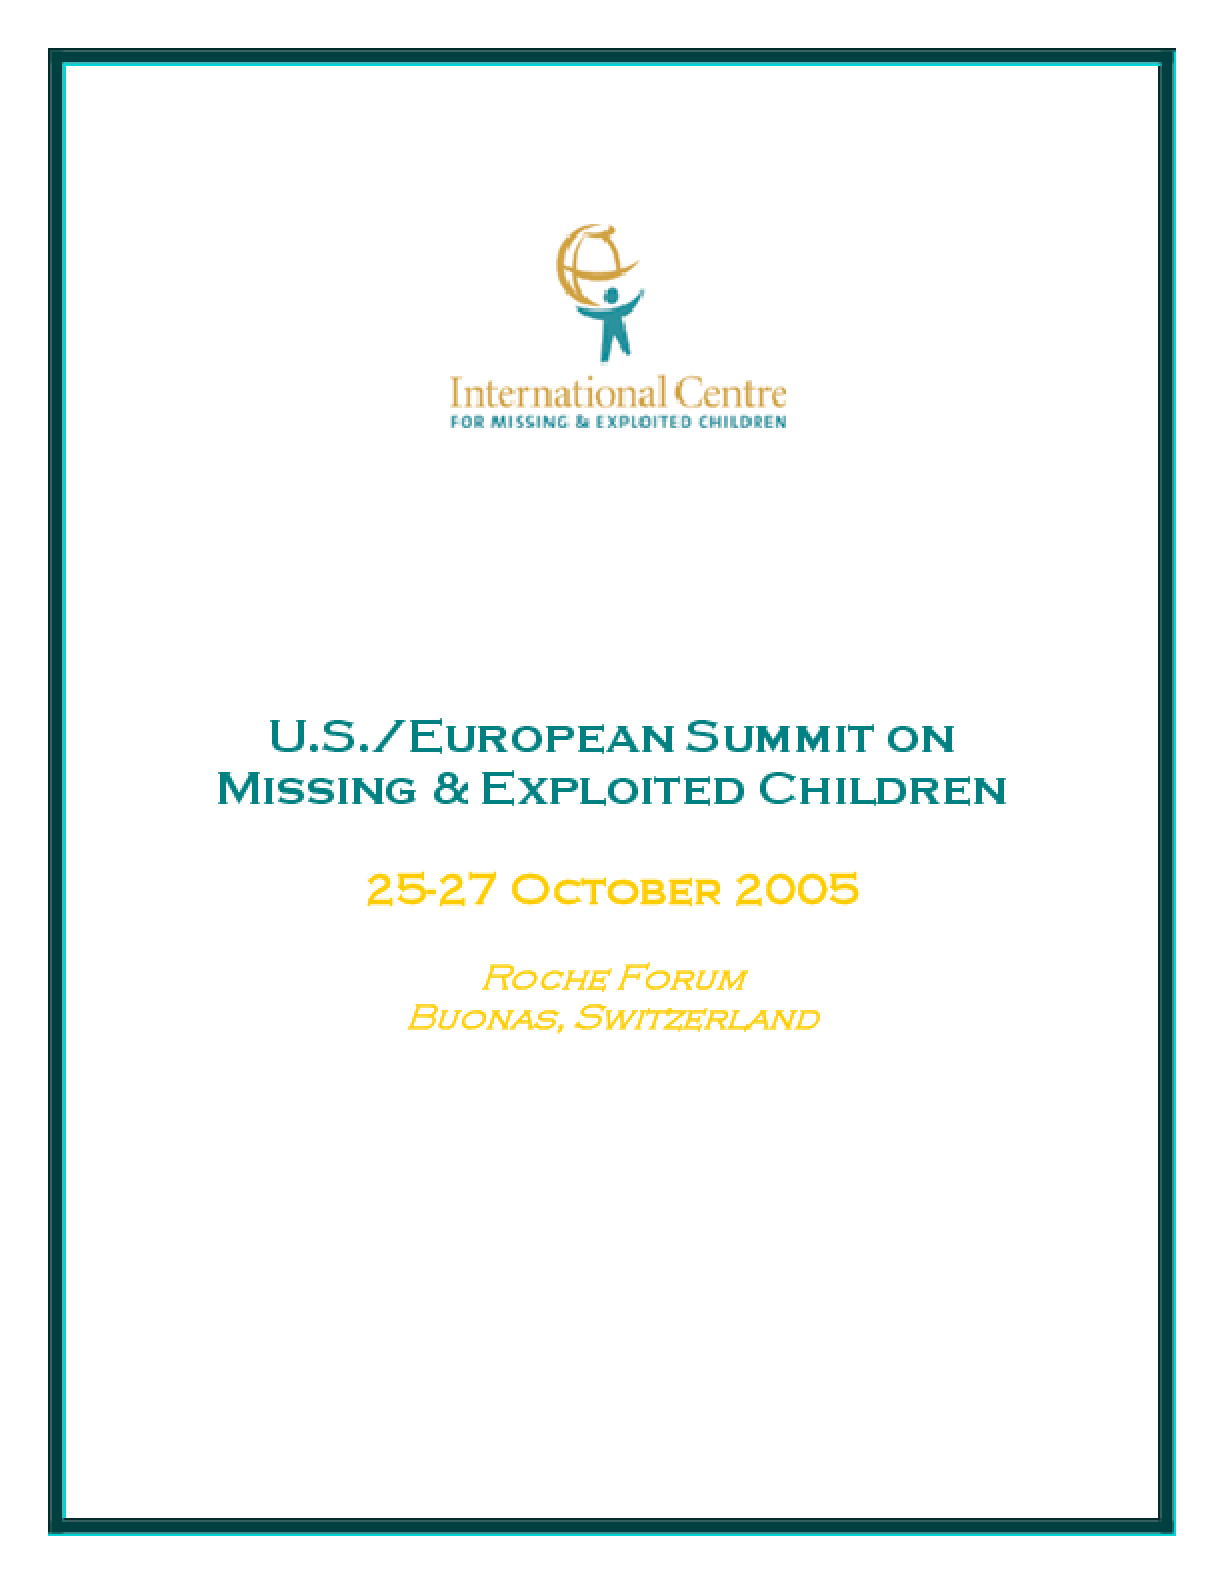 U.S./European Summit on Missing & Exploited Children